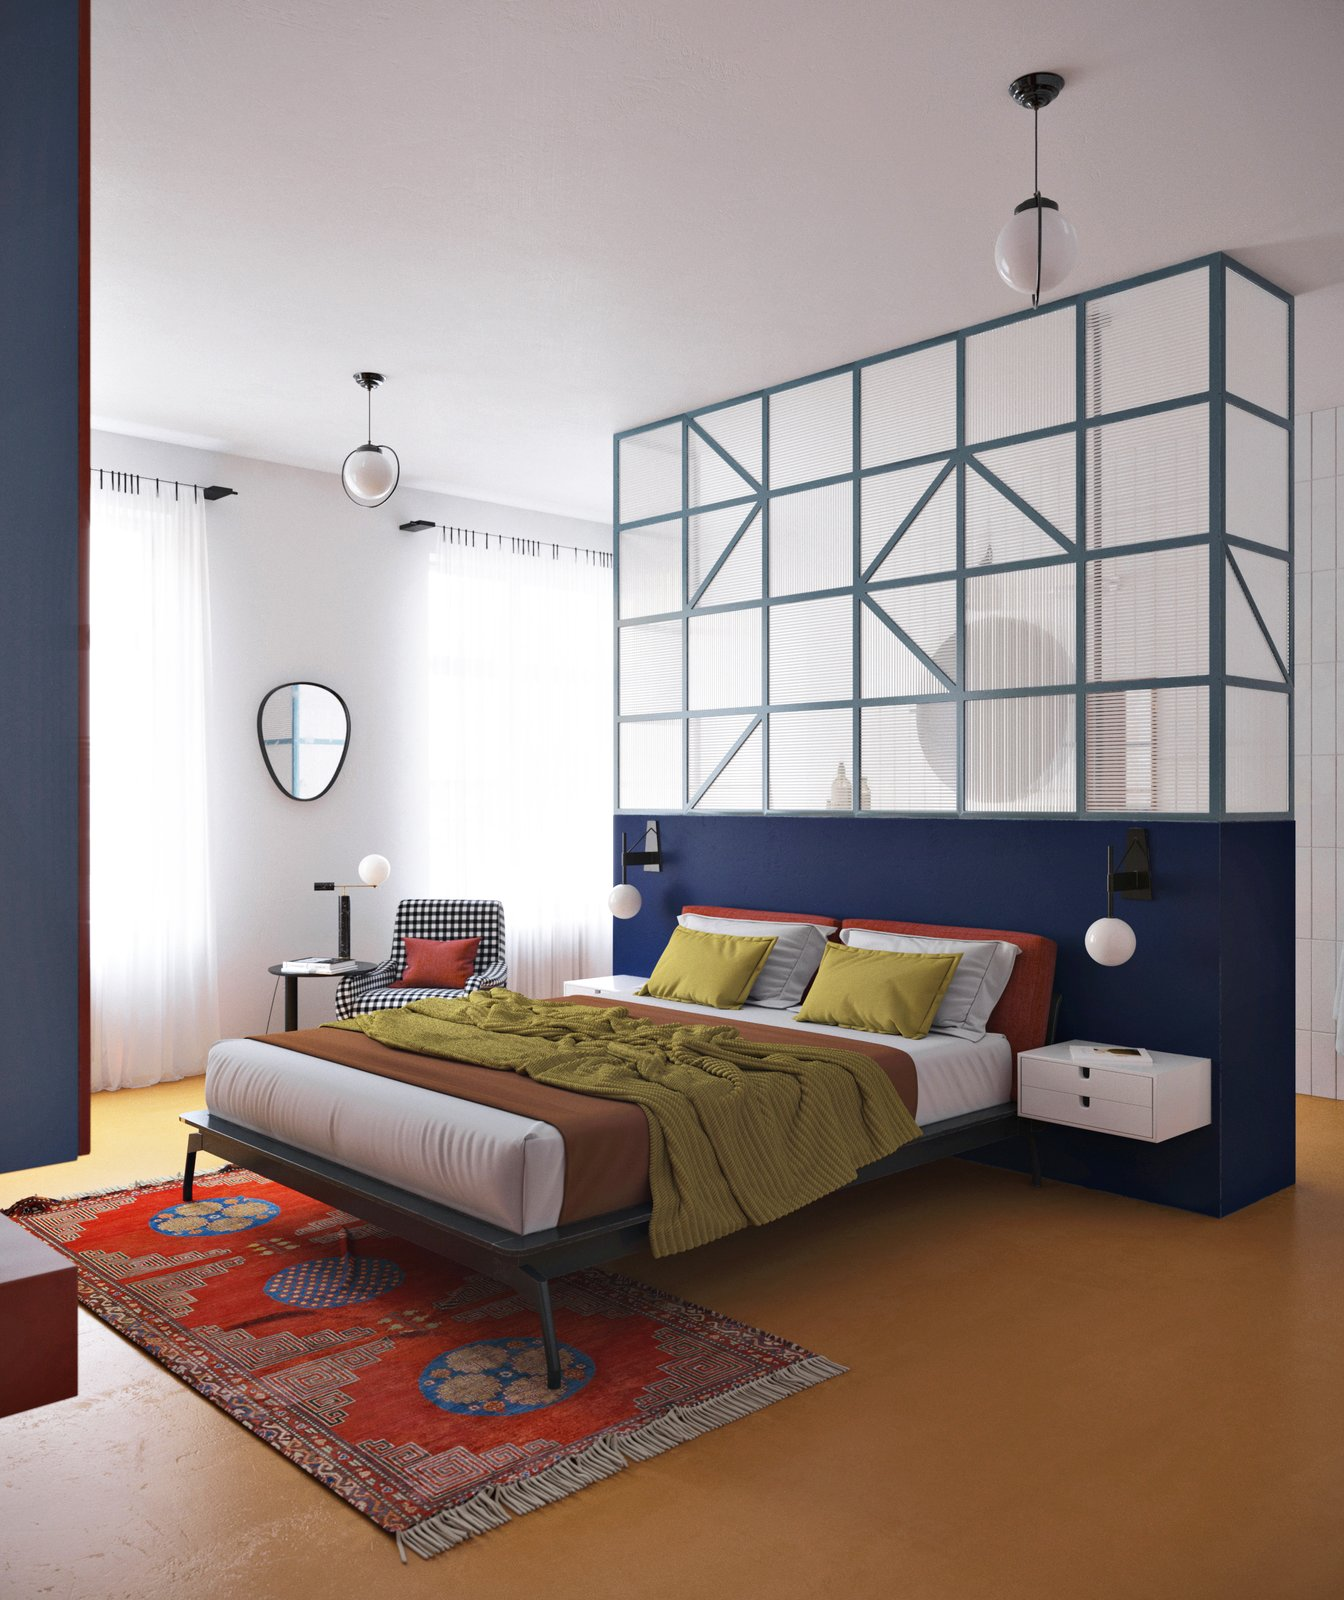 Bedroom, Rug Floor, Wall Lighting, Night Stands, Concrete Floor, Table Lighting, Bed, Pendant Lighting, Chair, and Lamps A look at the second zone of the home, which contains a custom-designed bed.  Photo 5 of 7 in Bright Colors Meet Bold Patterns in This Compact Oslo Abode